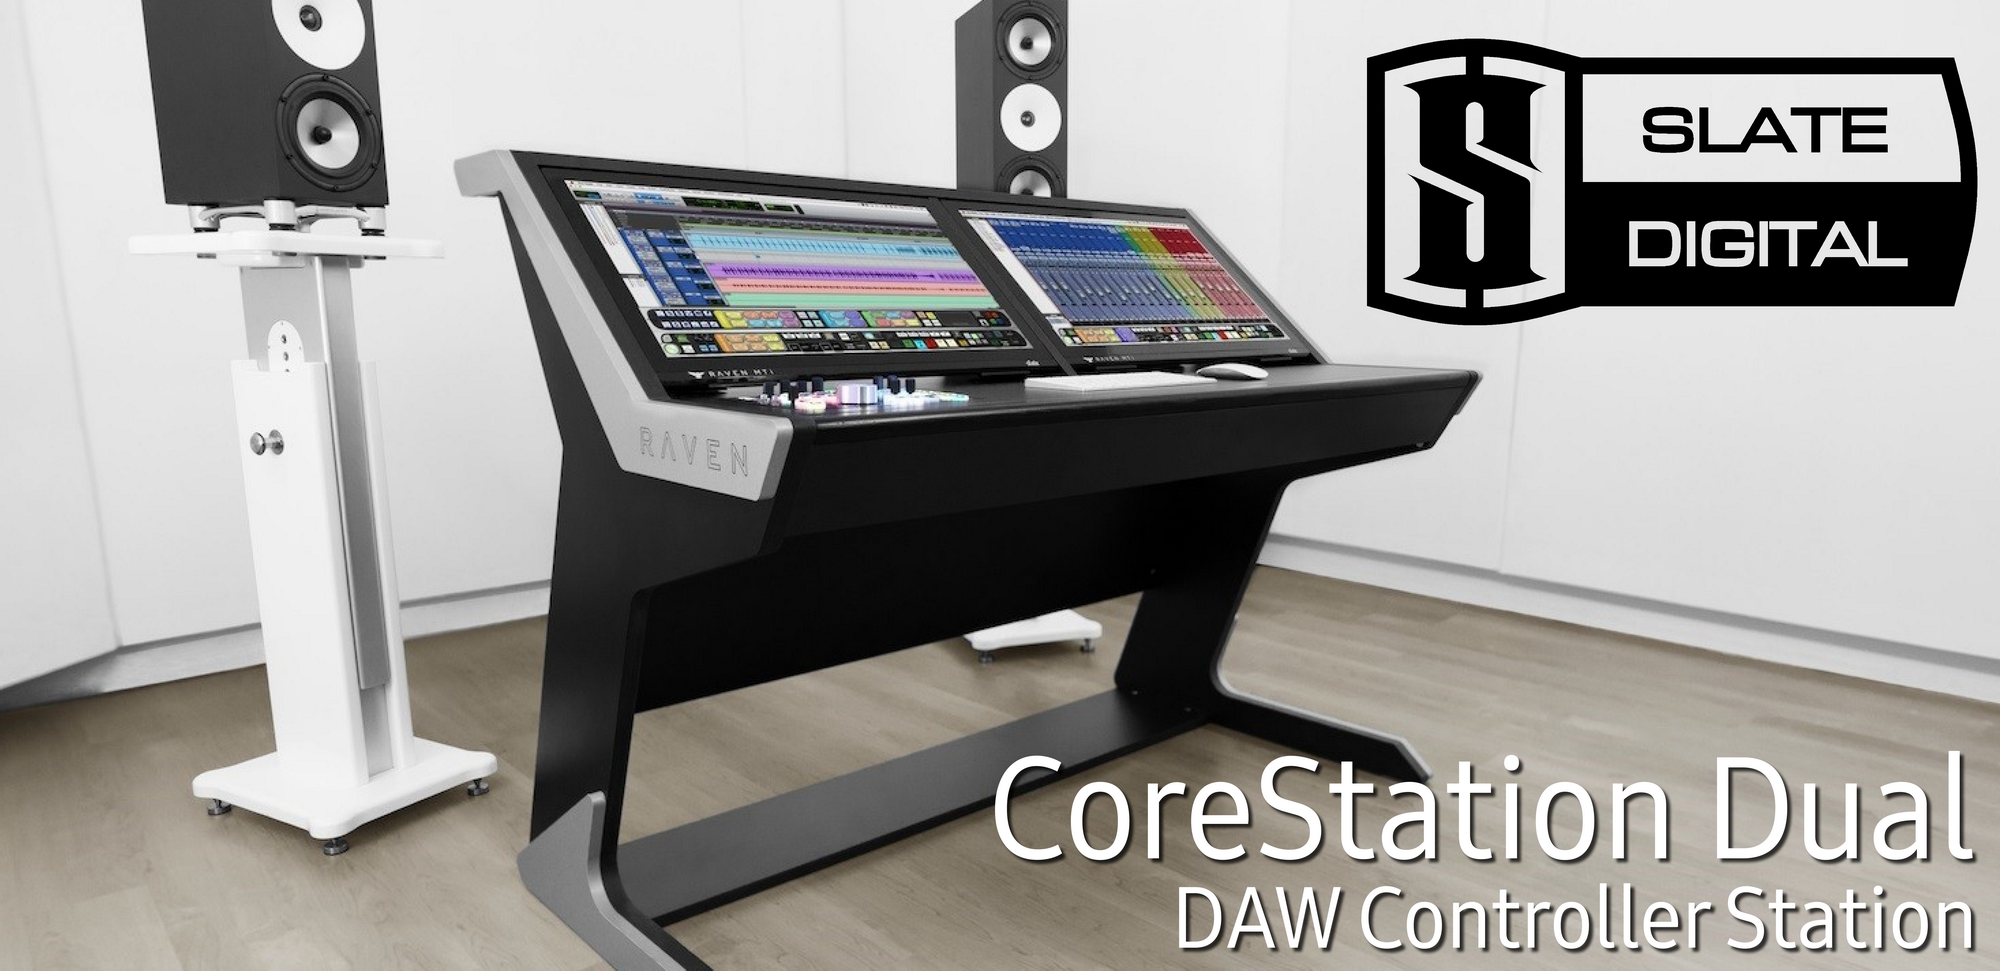 Slate Digital Raven Mti Core Station Dual